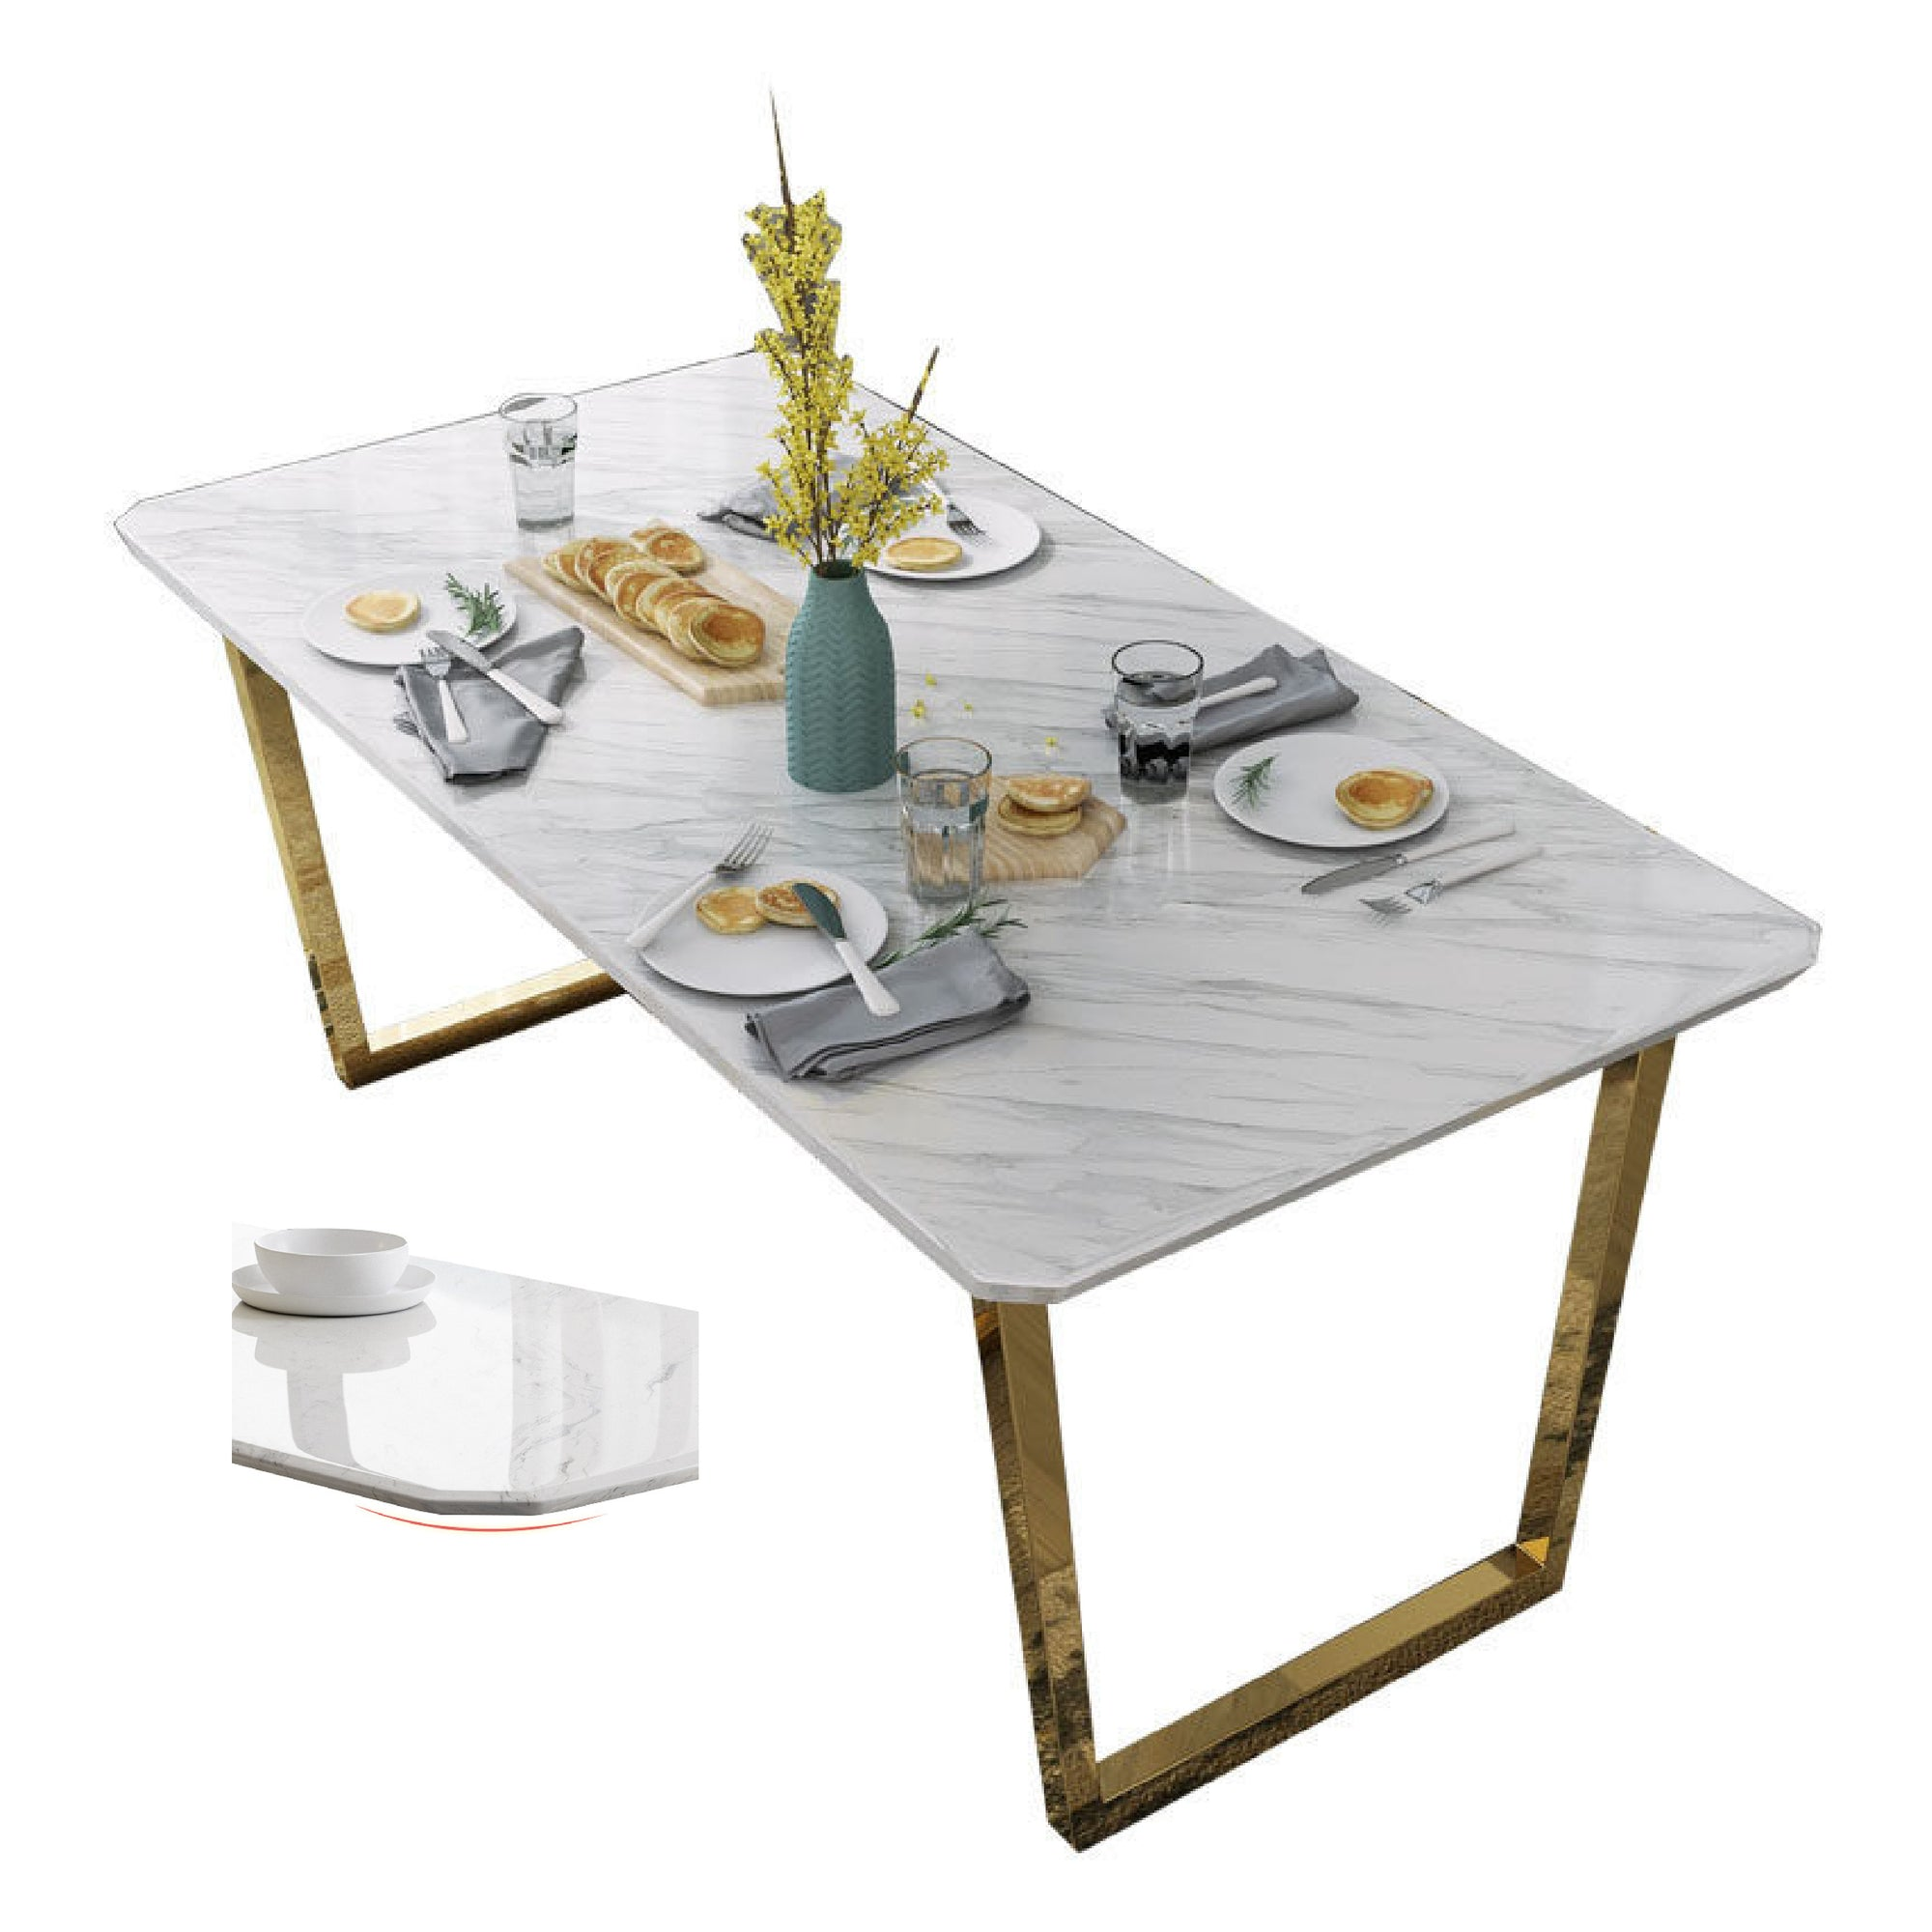 Jois Marble Table - mhomefurniture